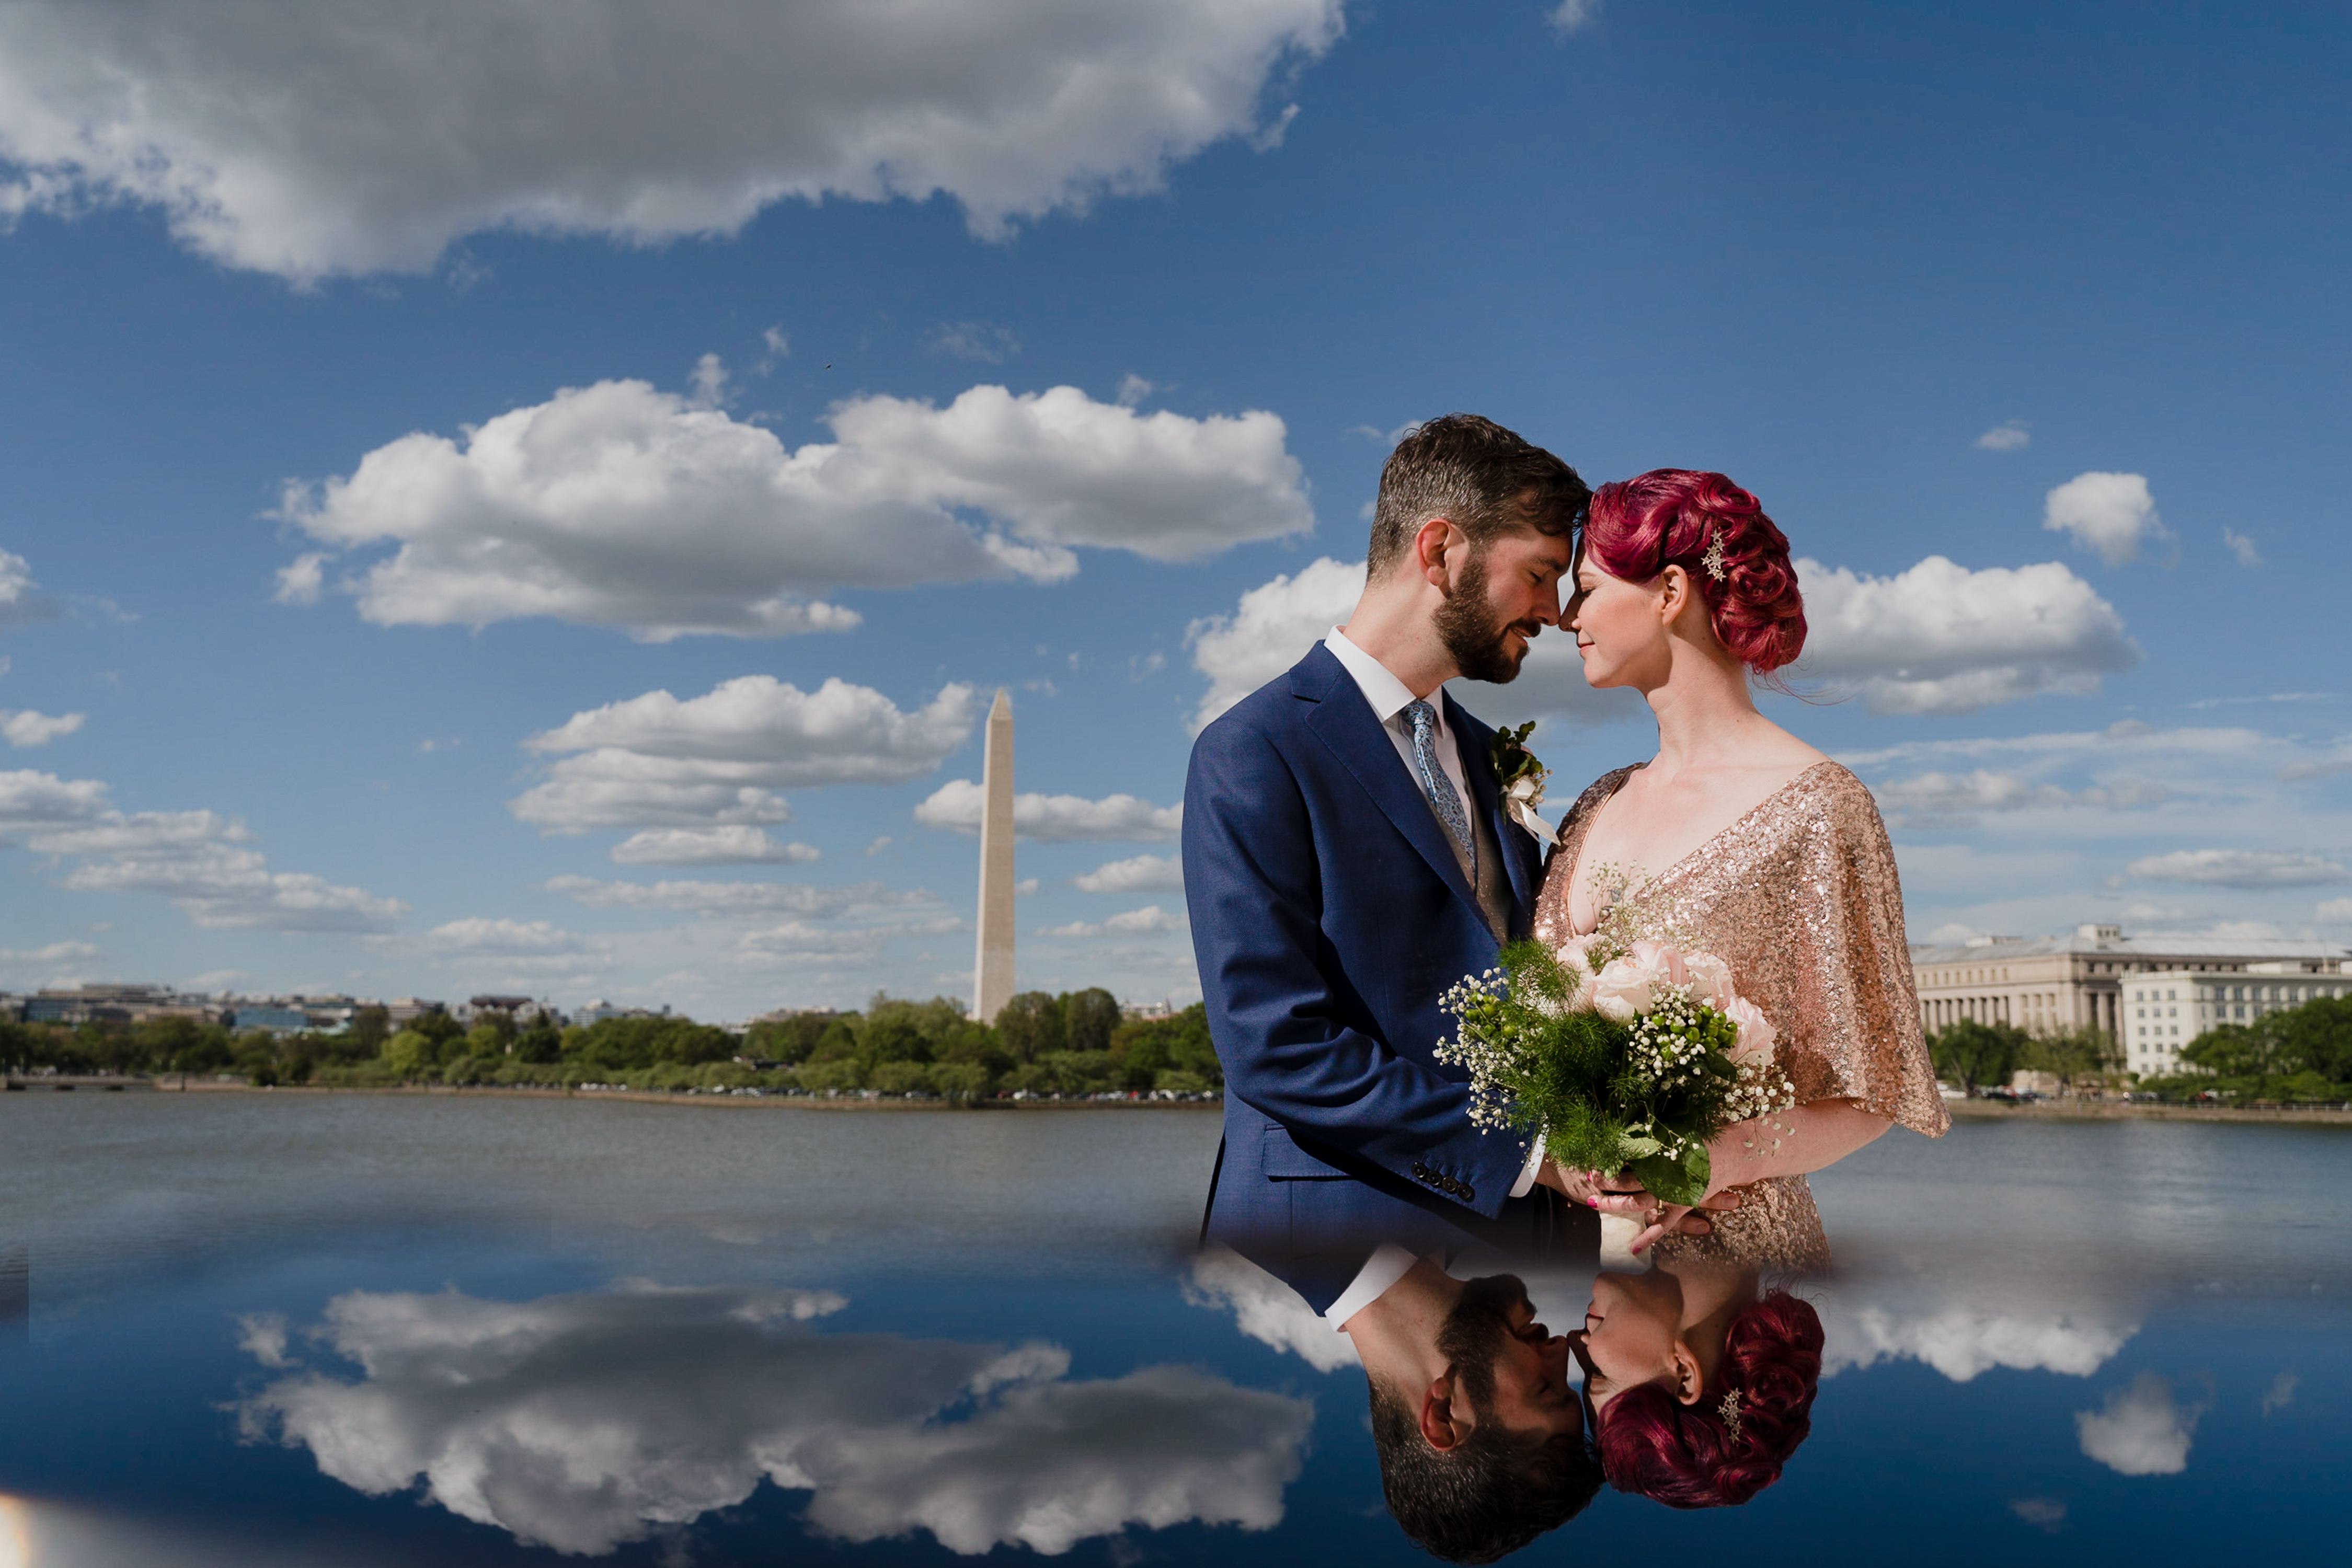 A wedding couple touch forehands gently with the Washington Monument in the background